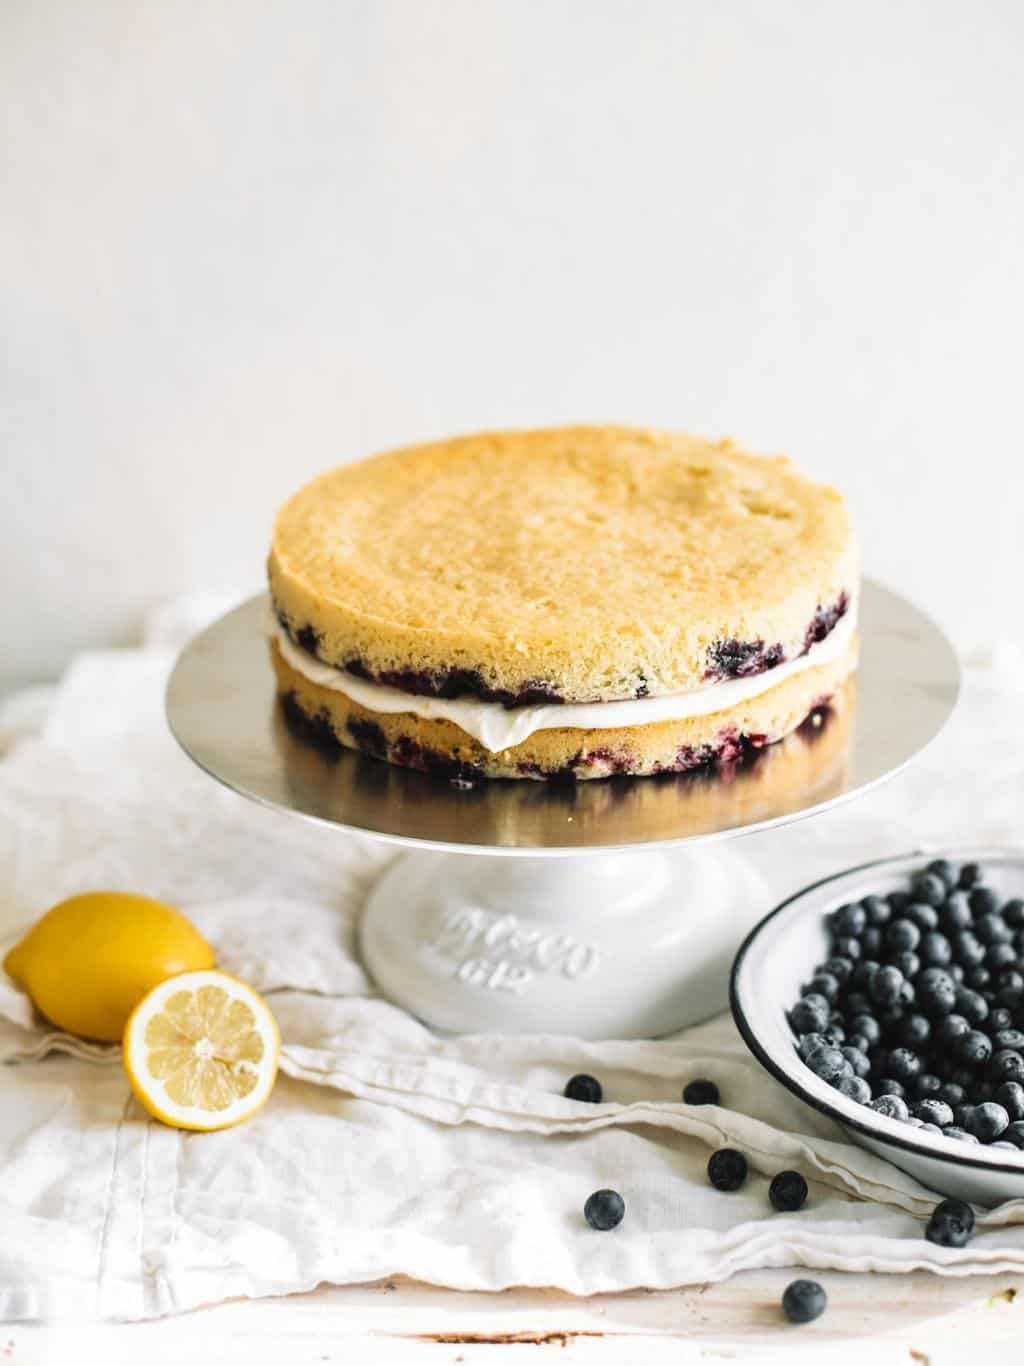 Lemon Blueberry Cake with Lemon Buttercream #lemonbuttercream Lemon Blueberry Cake with Lemon Buttercream #lemonbuttercream